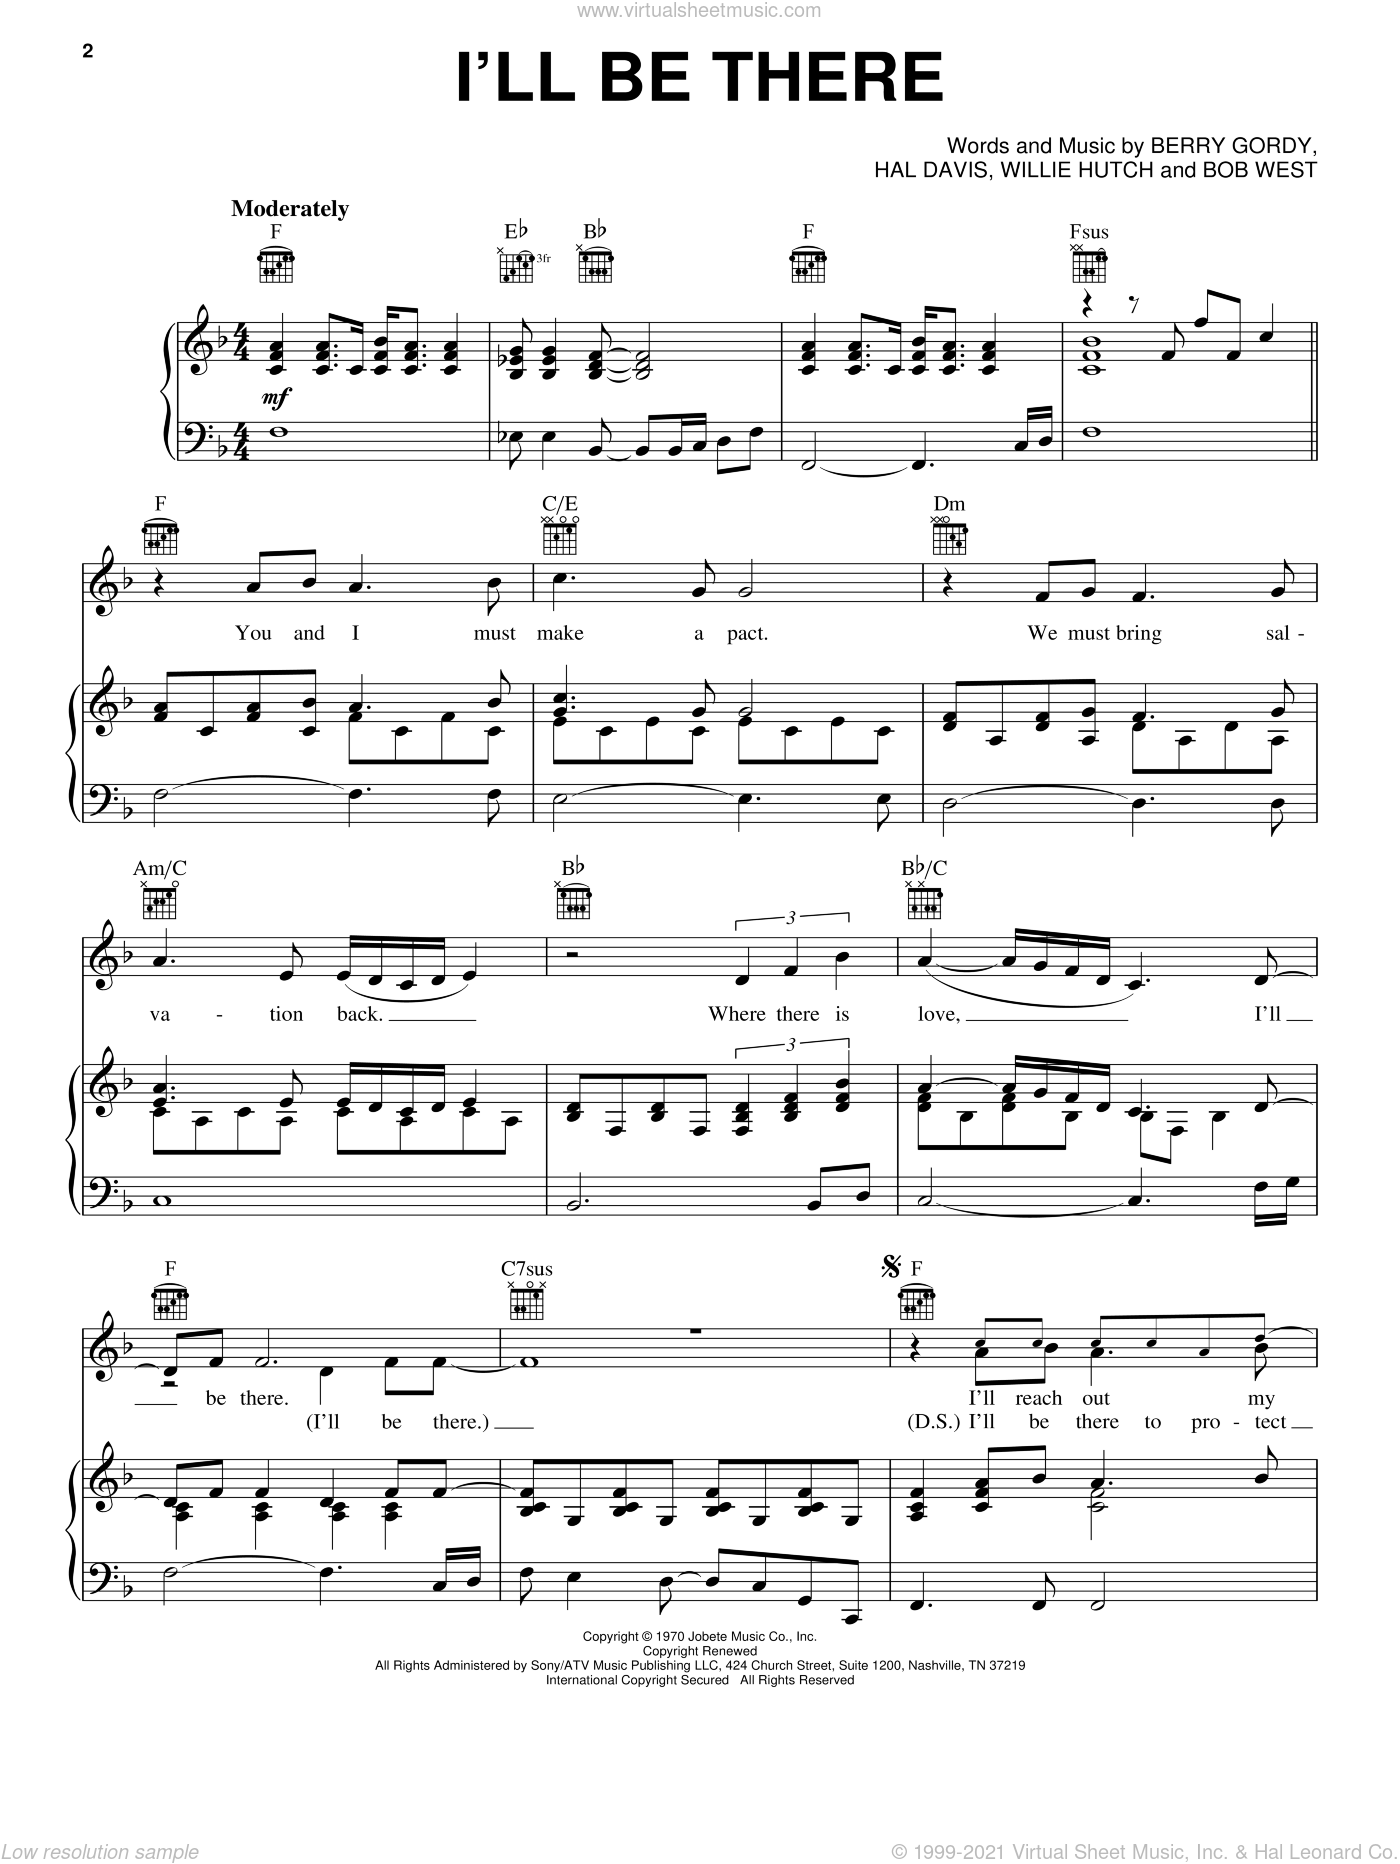 I'll Be There sheet music for voice, piano or guitar by Mariah Carey, Michael Jackson, The Jackson 5, Berry Gordy, Hal Davis and Willie Hutch, intermediate skill level